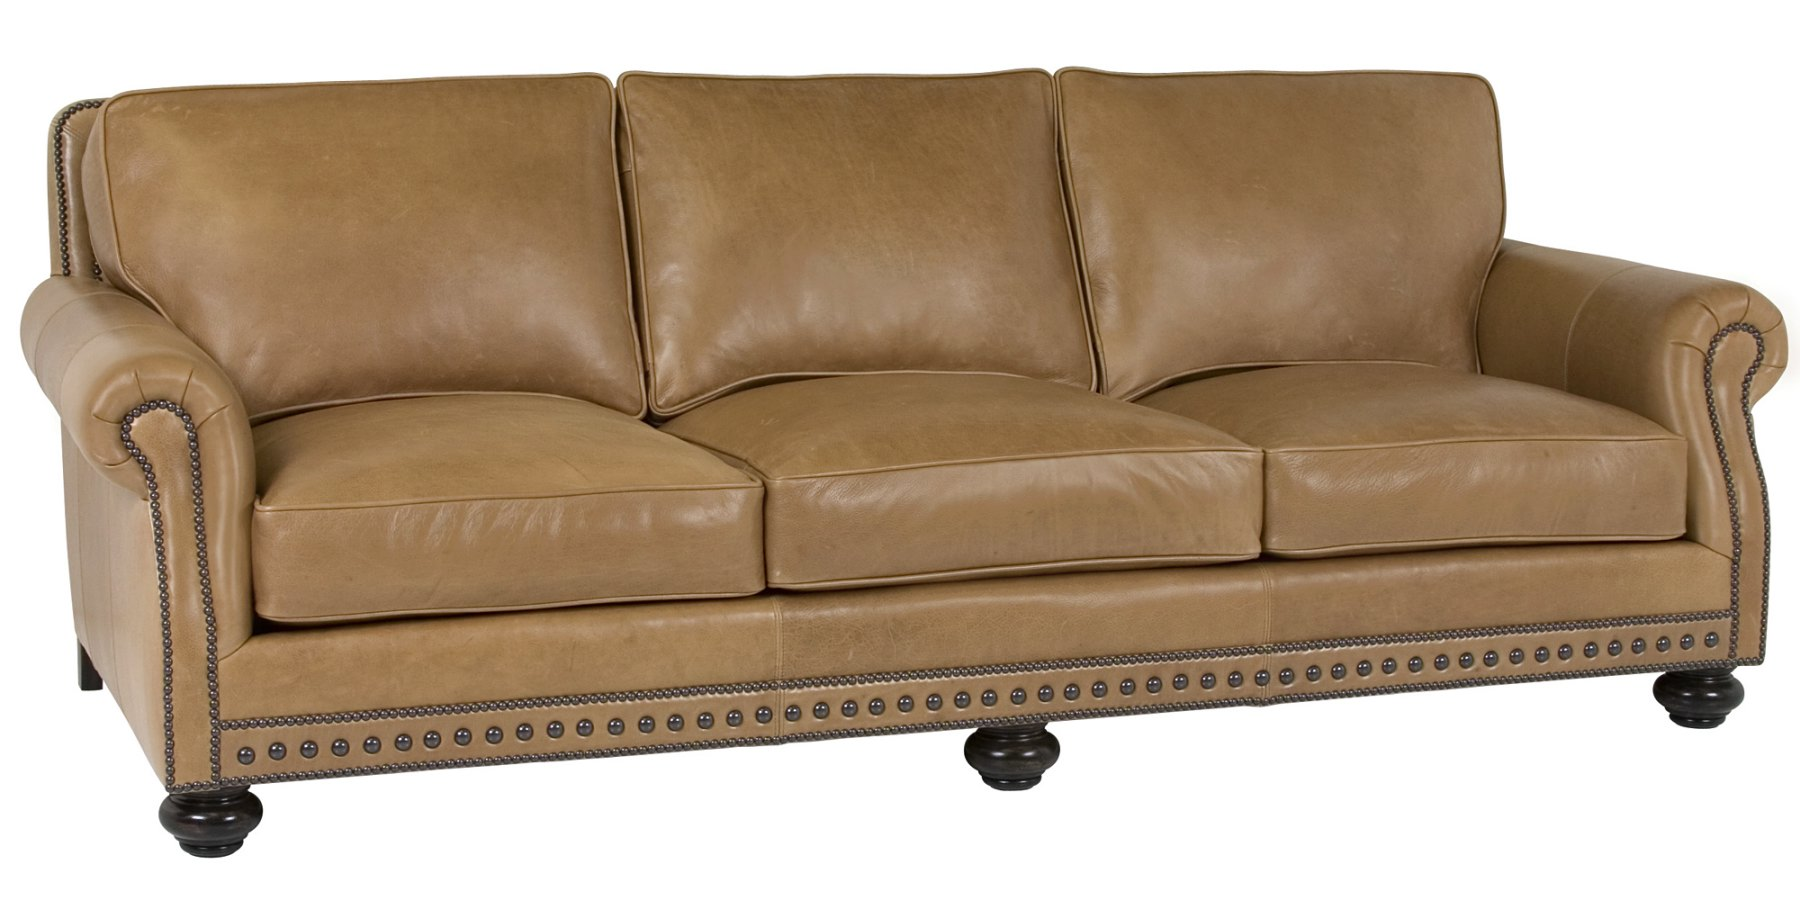 Leather pillow back sofa with rolled arms and nail trim for Leather furniture